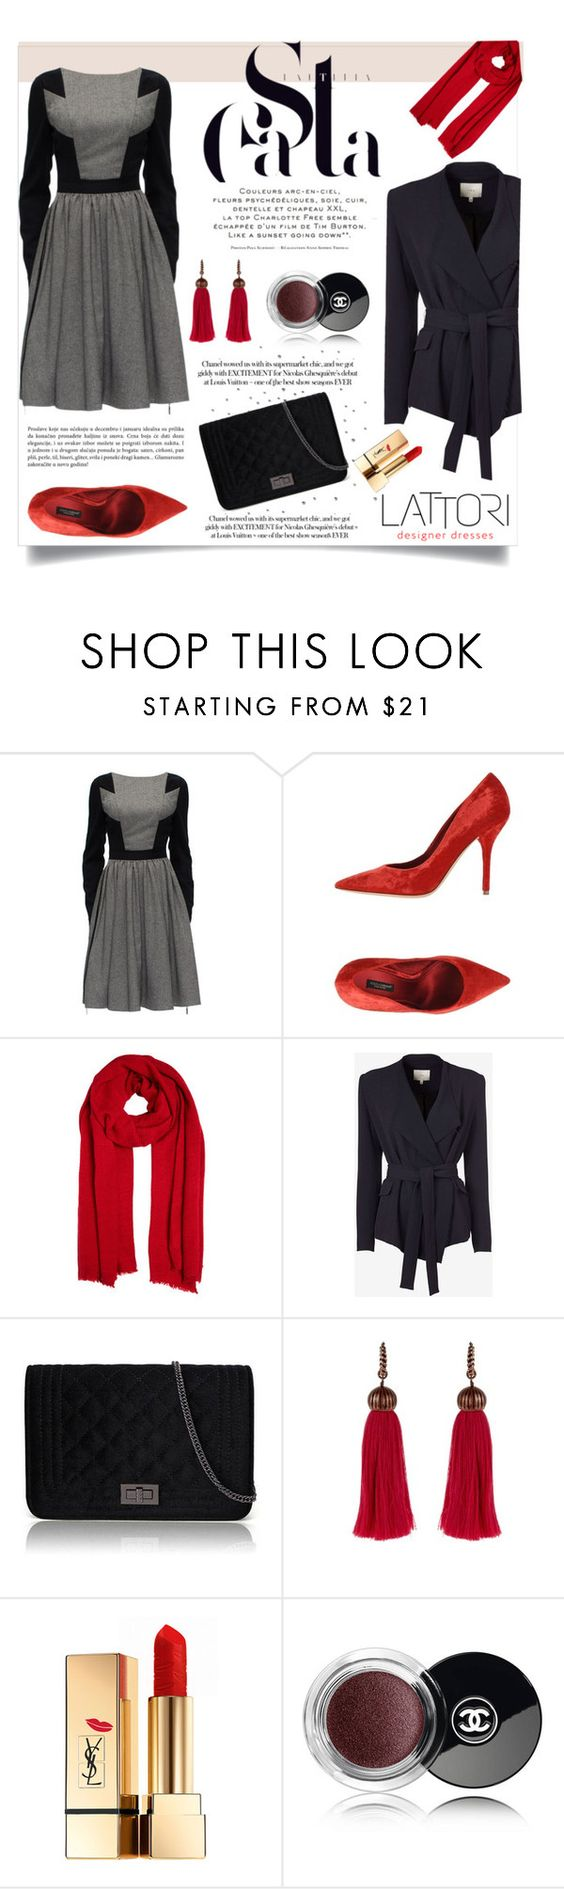 """Lattori #24"" by ana-anaaaa ❤ liked on Polyvore featuring Lattori, Dolce&Gabbana, IRO, Lanvin, Yves Saint Laurent, Chanel and polyvoreeditorial"